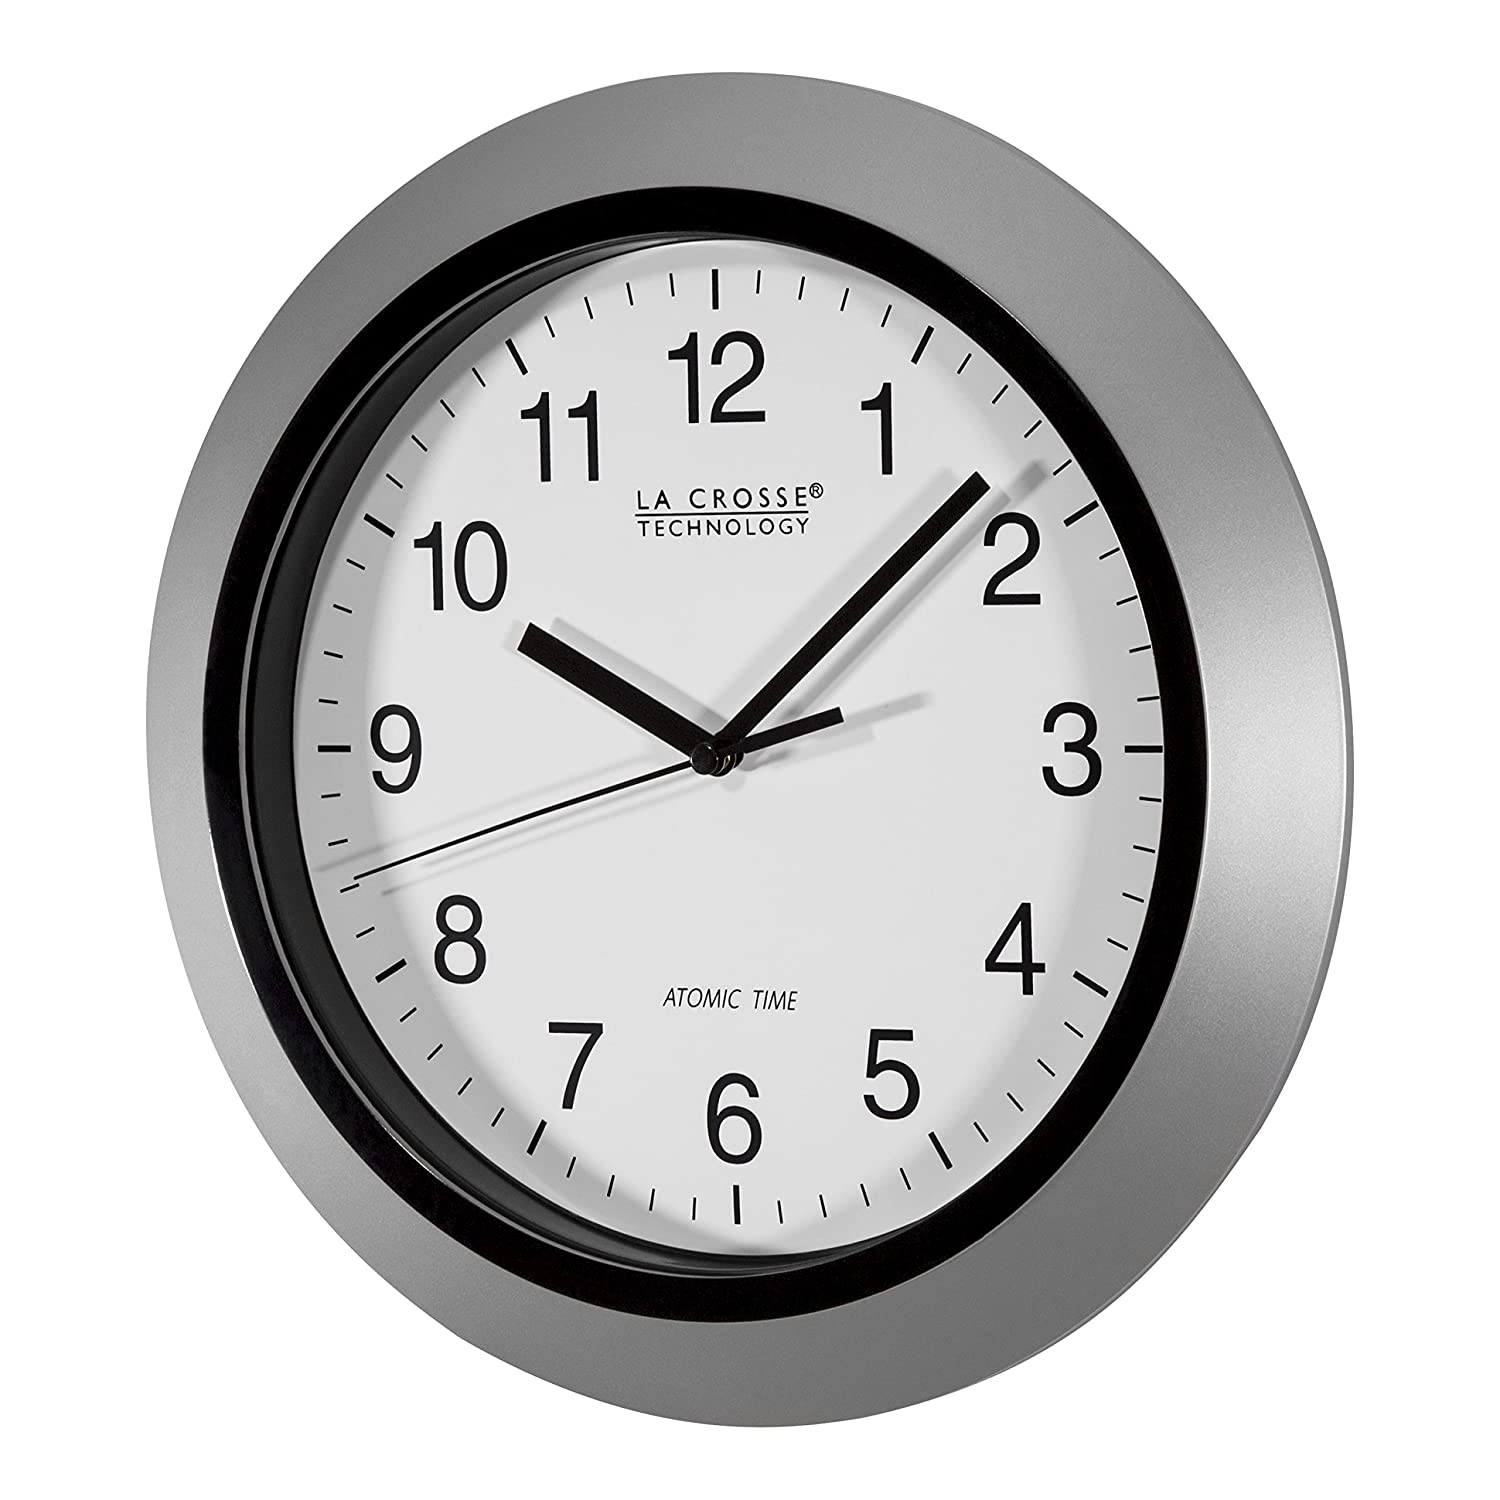 Amazon la crosse technology wt 3102s 10 inch atomic analog amazon la crosse technology wt 3102s 10 inch atomic analog wall clock silver home kitchen amipublicfo Images